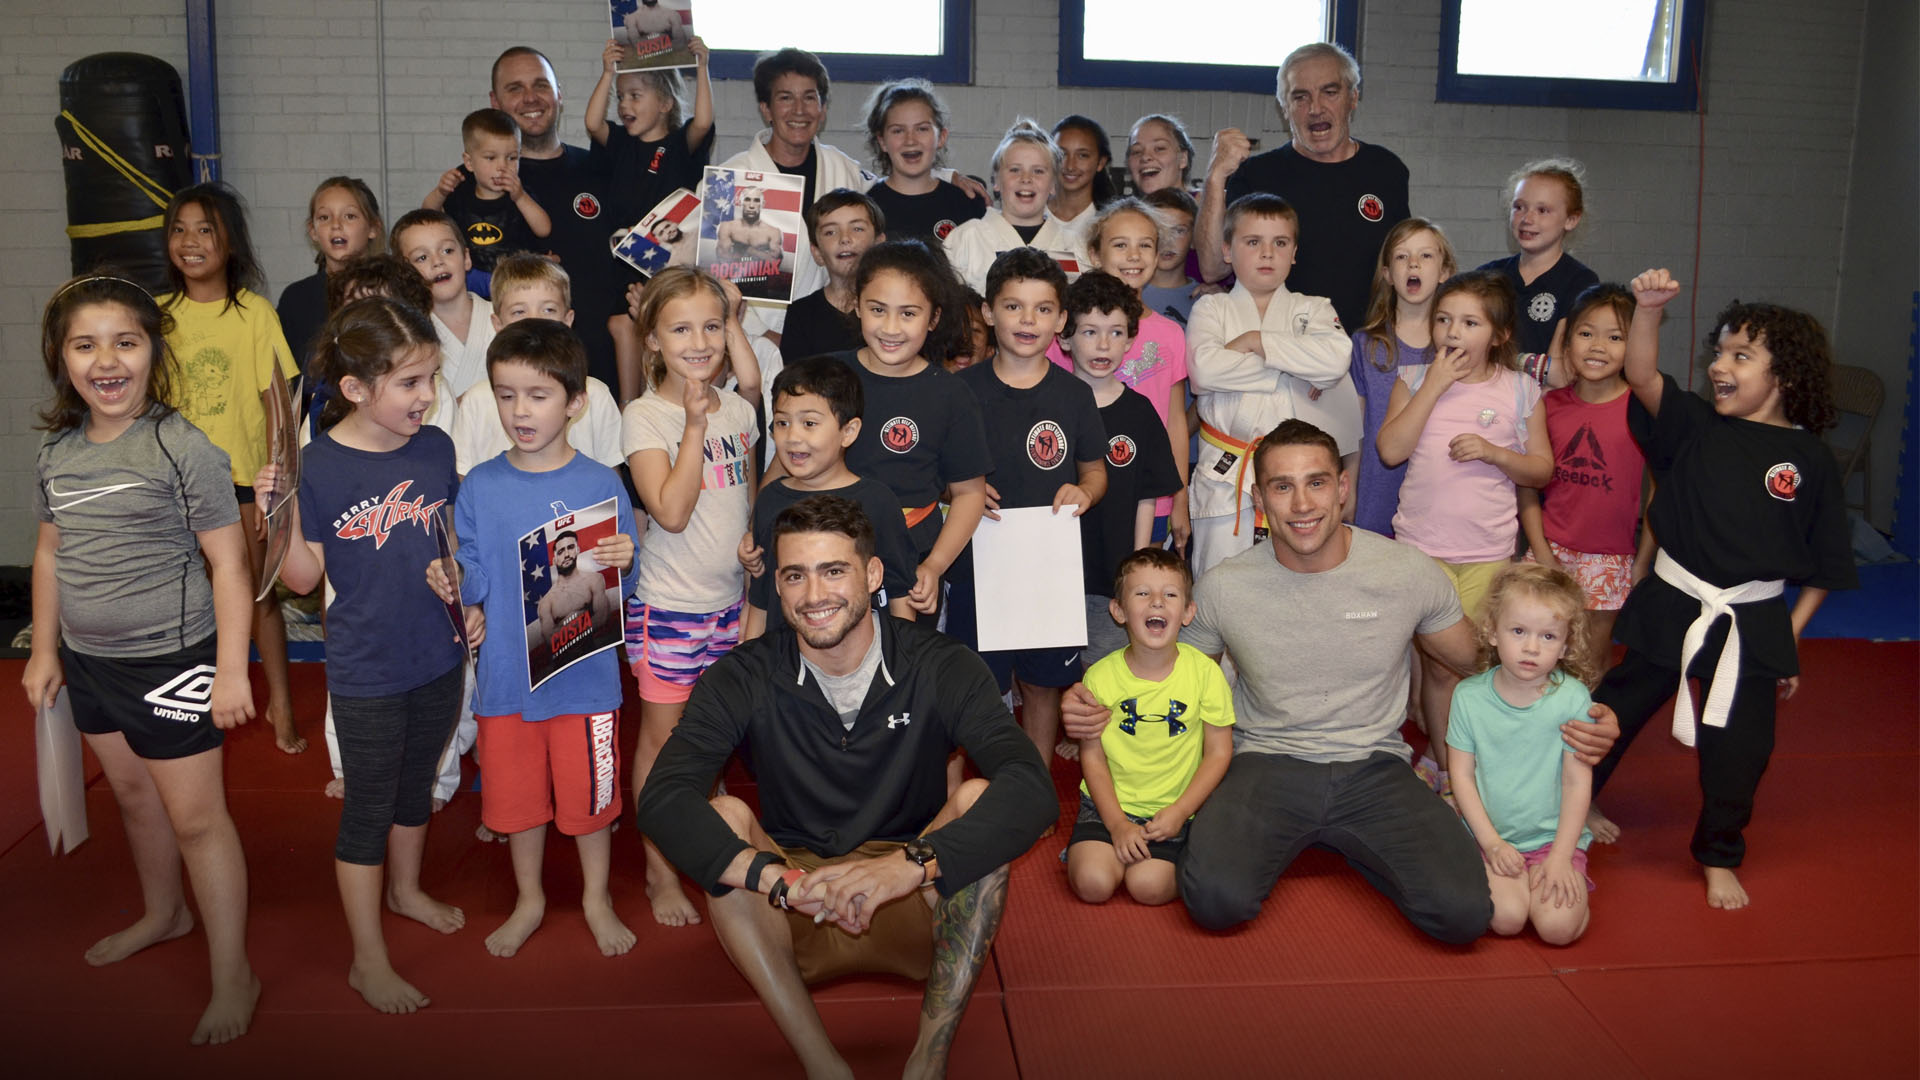 Boston-based fighters Randy Costa and Kyle Bochniak poss with young fans at Ultimate Self Defense